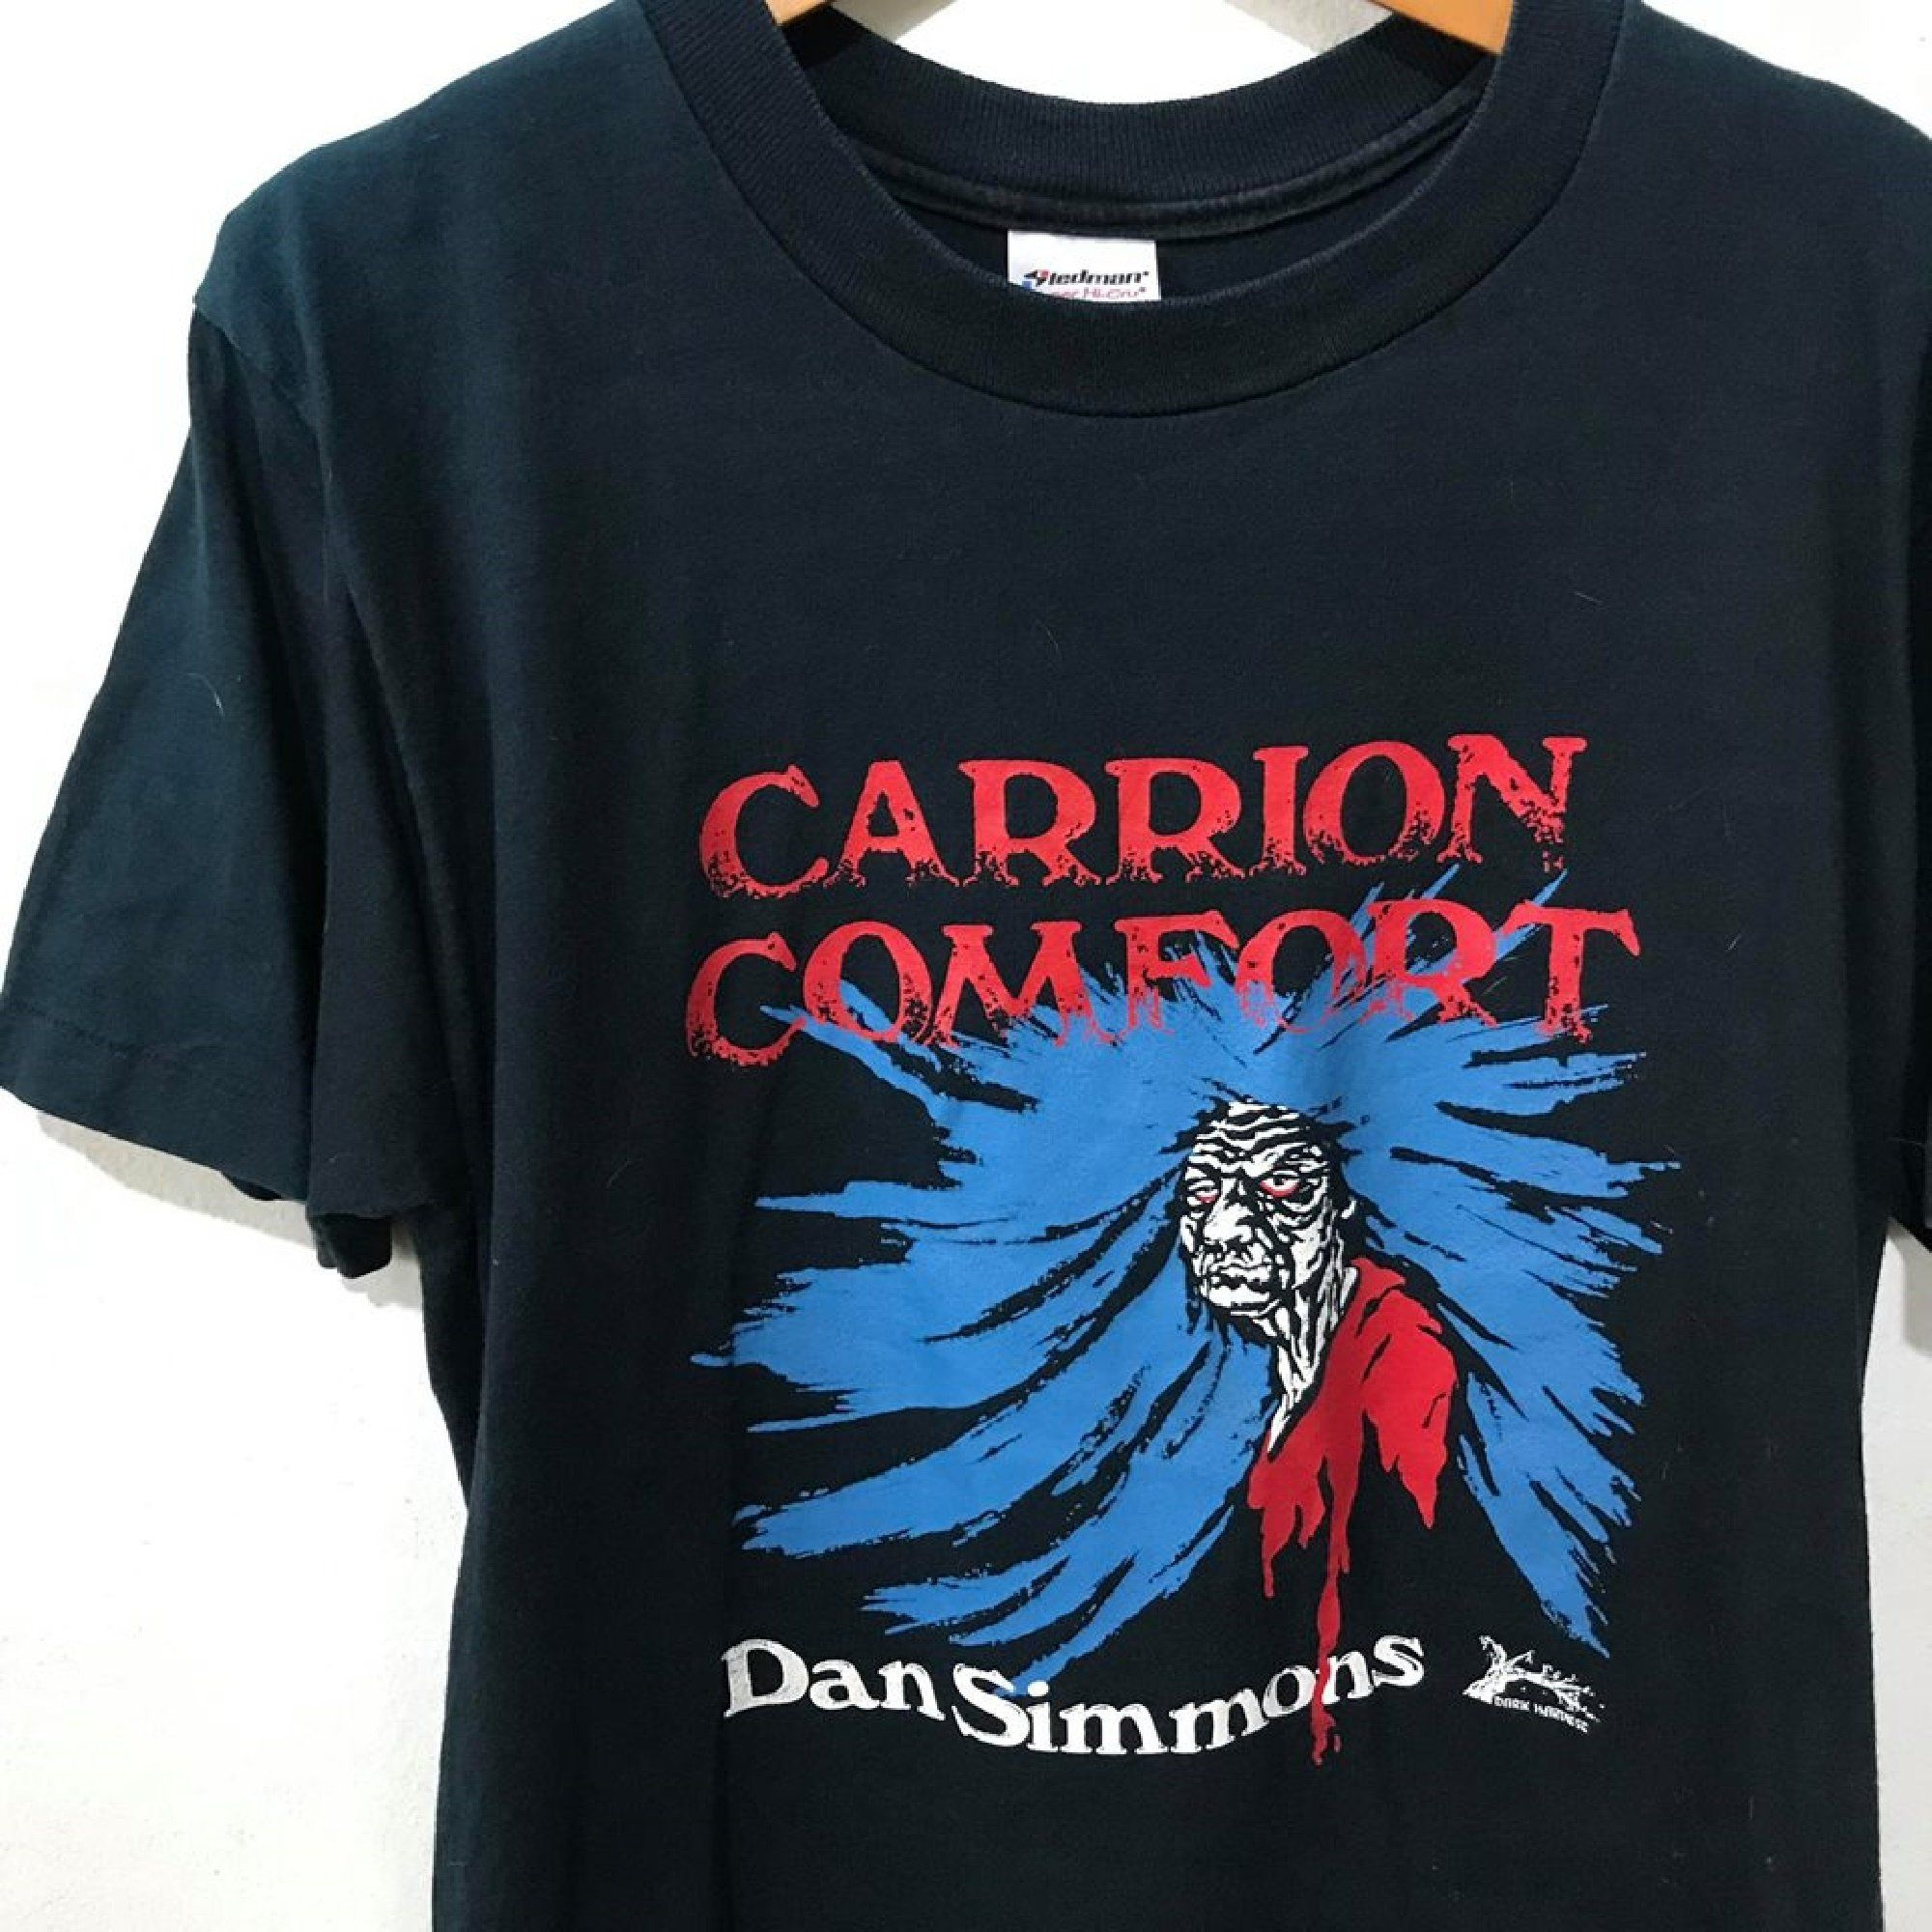 Vintage 90s Carrion Comfort Shirt Size M Free Shipping Shirts Mens Tops Shirt Size